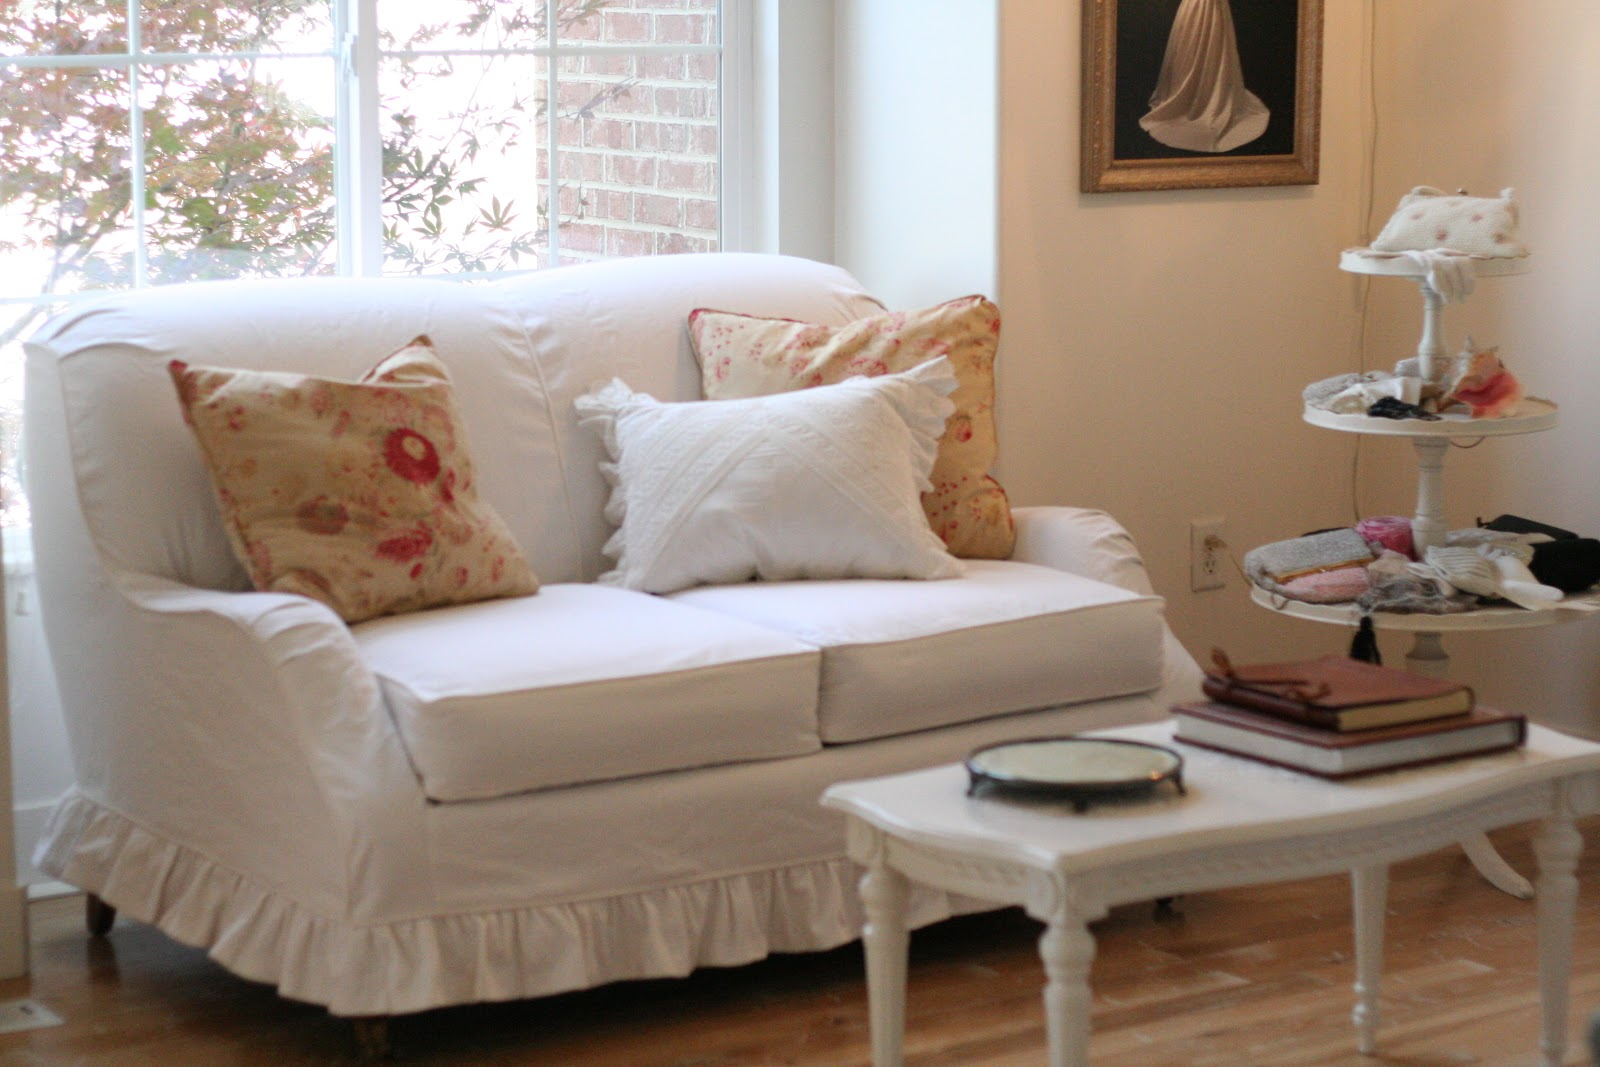 Custom slipcovers by shelley white denim loveseat with ruffled skirt White loveseat slipcovers